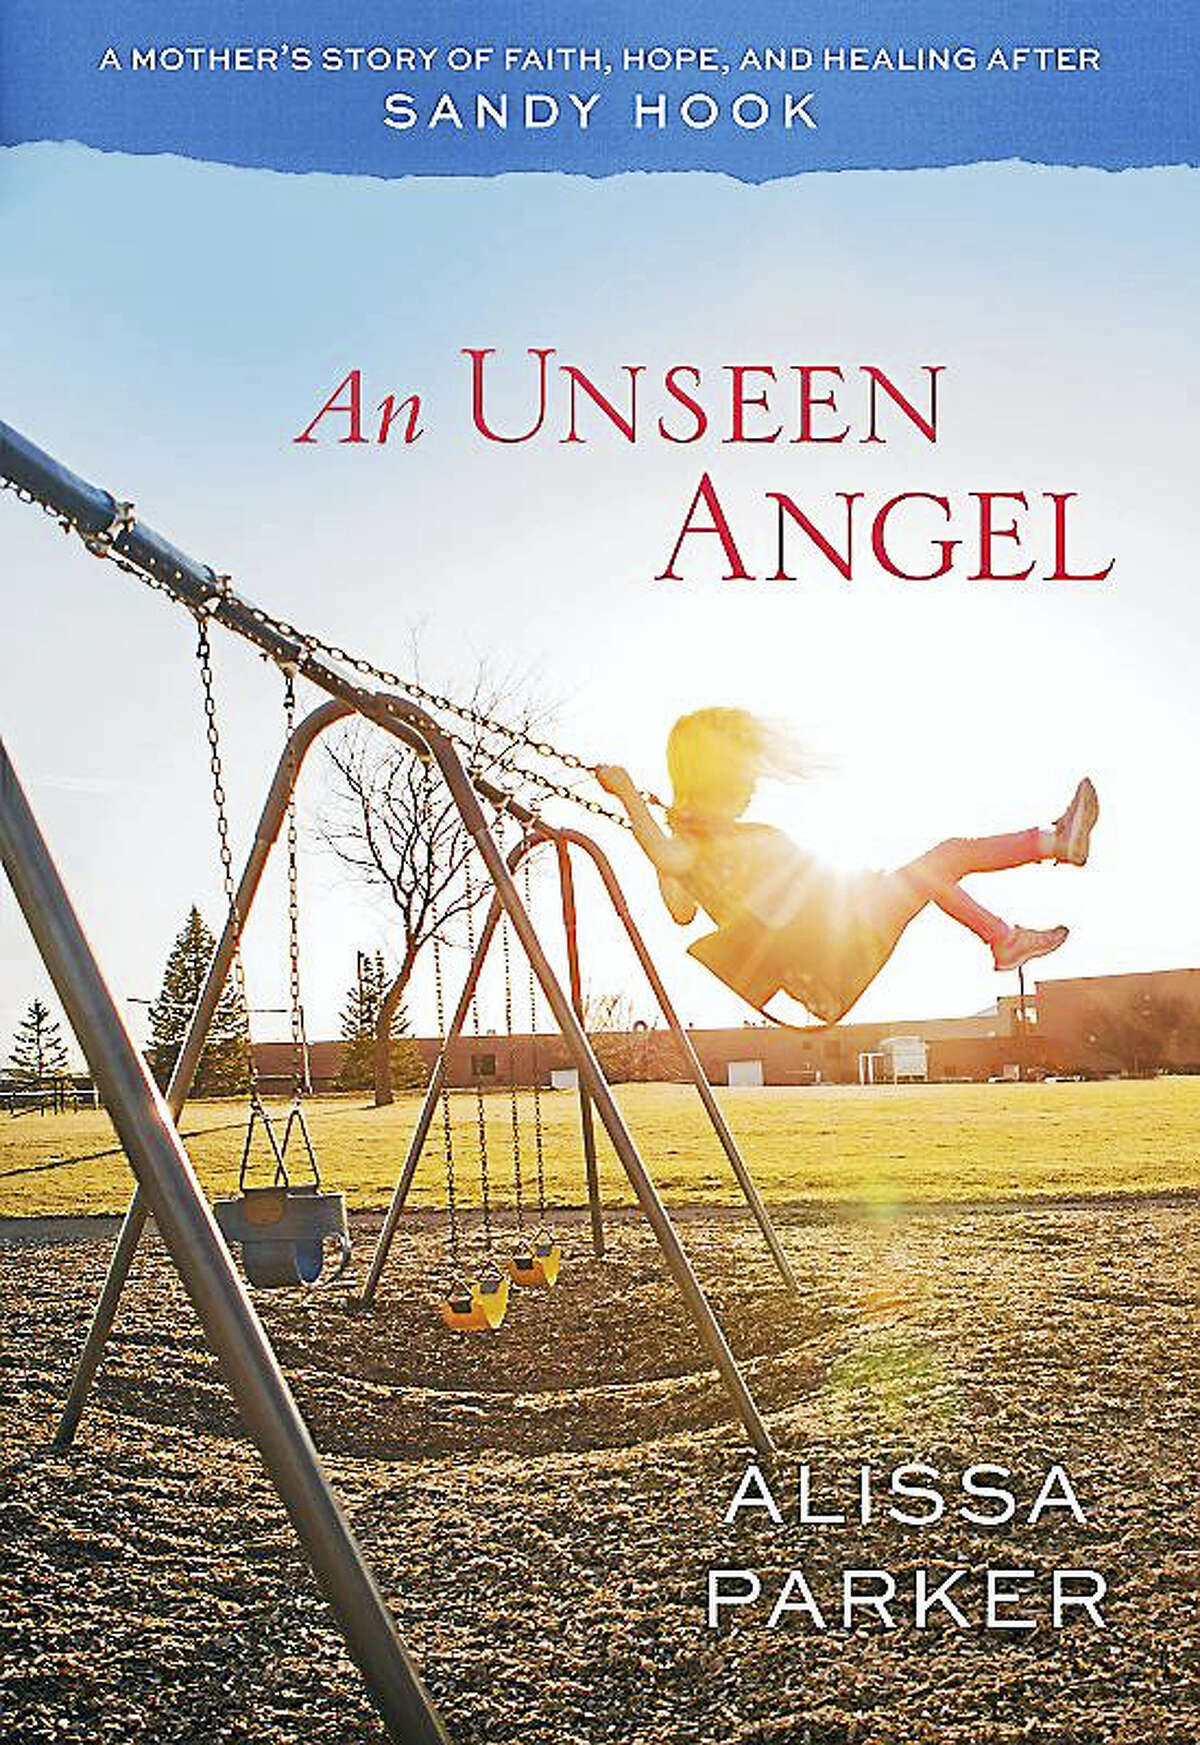 """The cover of the book, """"An Unseen Angel,"""" written by Alissa Parker about losing her oldest daughter Emilie, 6, who was killed in the shootings at Sandy Hook Elementary School."""